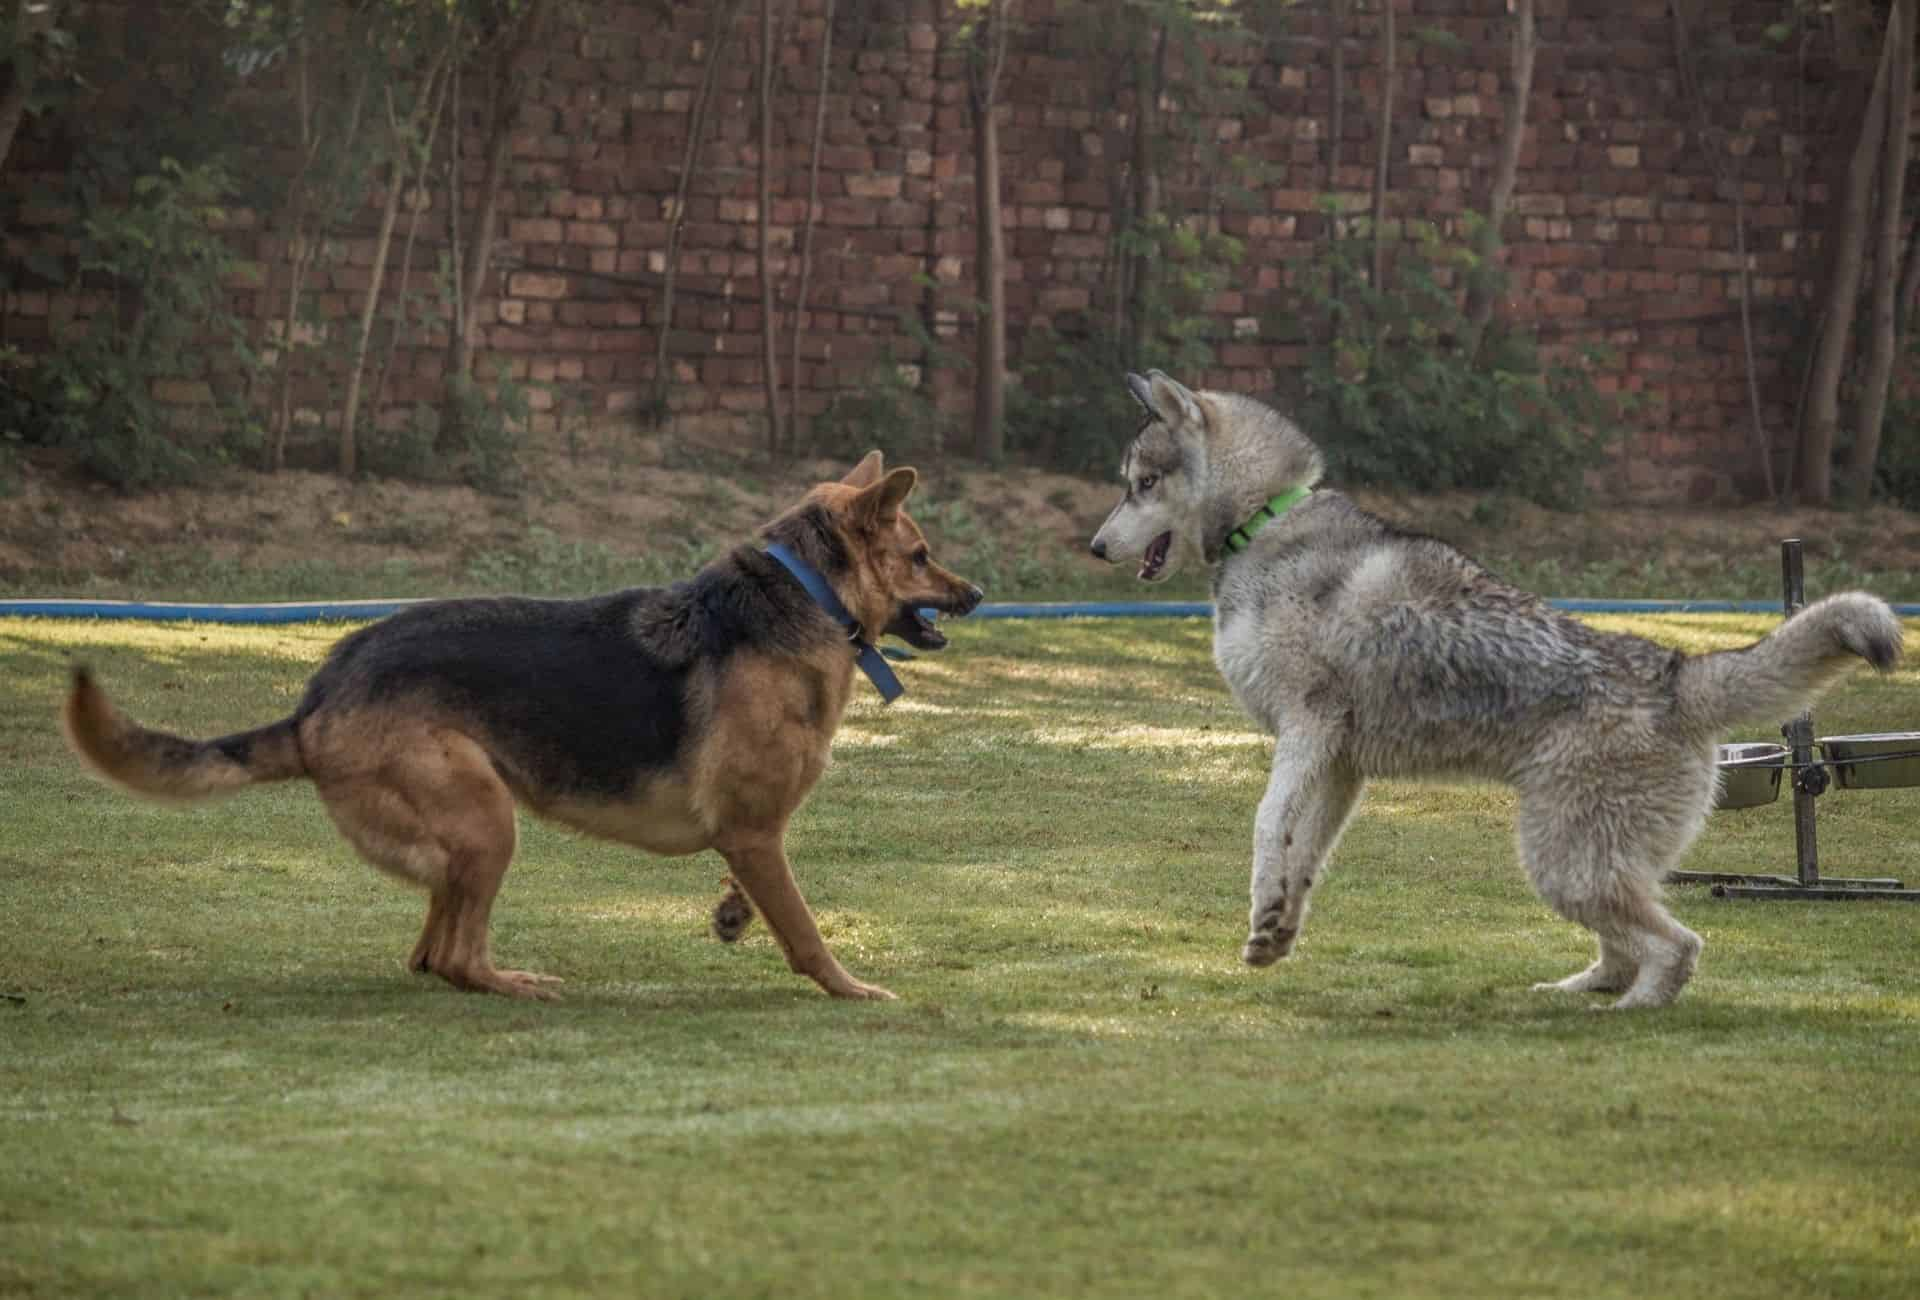 While rough play can make dogs more aggressive, normal play between dog is often interpreted as aggression.